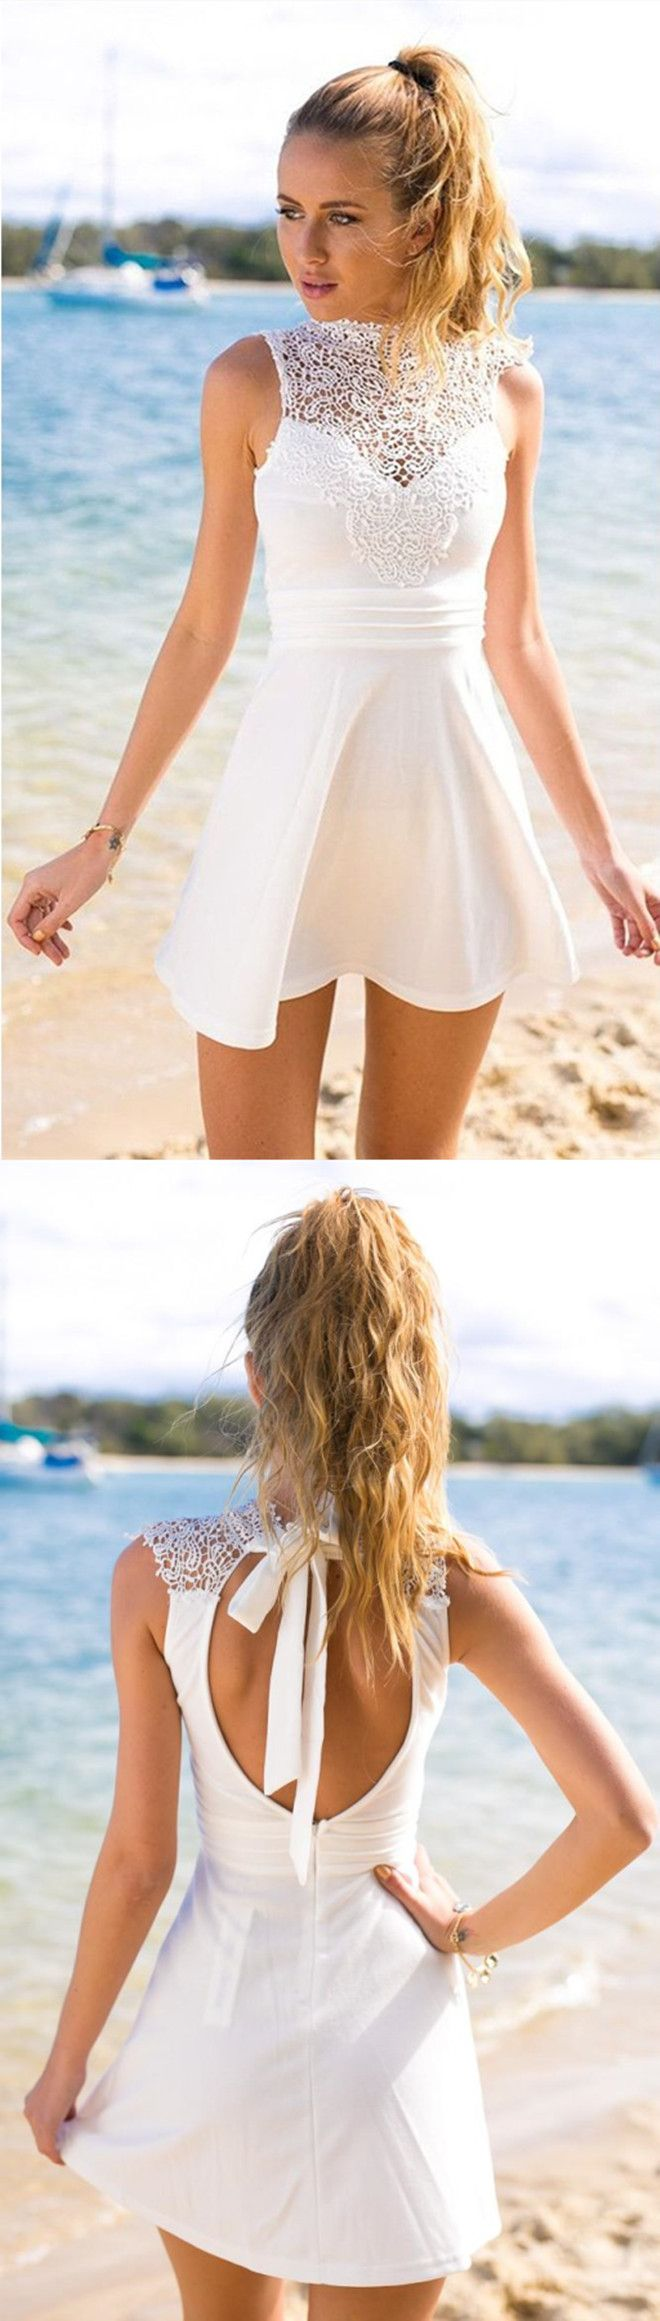 short homecoming dresses,lace homecoming dresses,white homecoming dresses,simple homecoming dresses